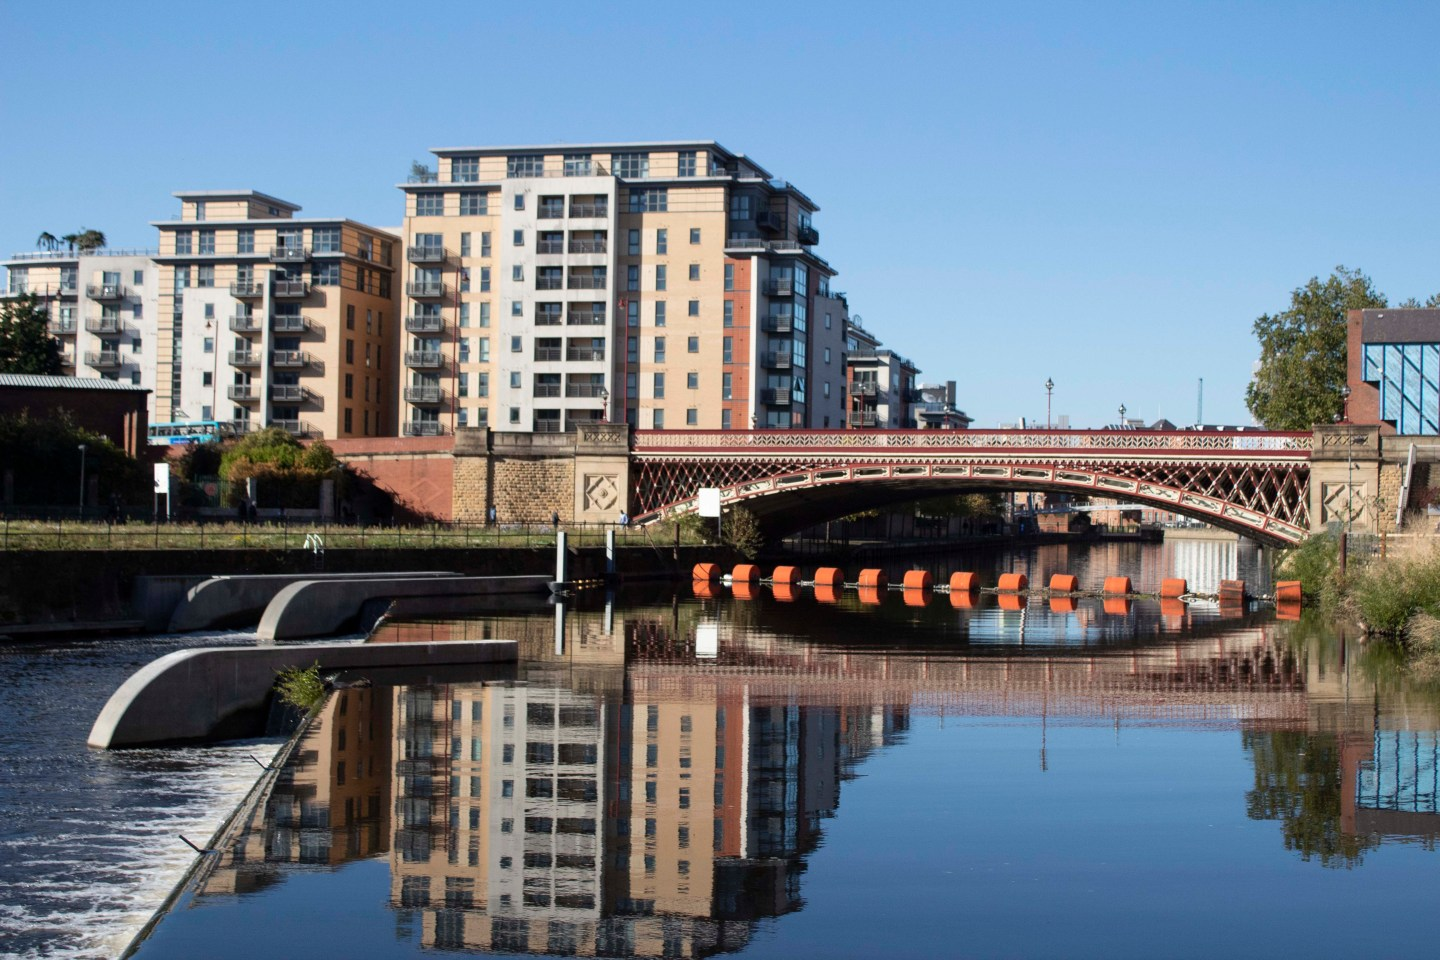 Bridge and still river on a sunny day in Leeds